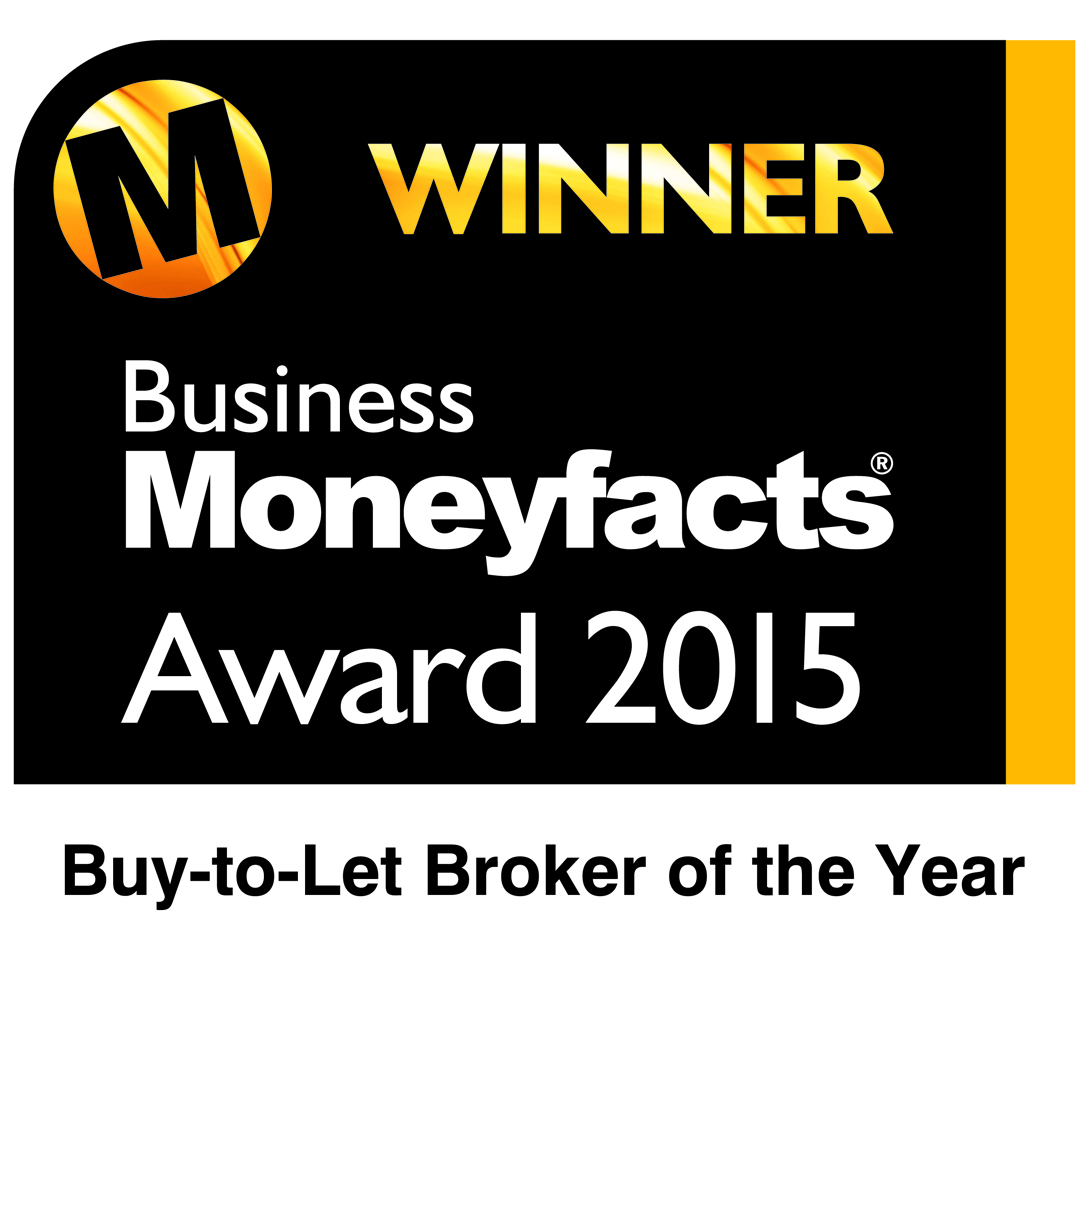 Buy to Let Broker of the Year 2015